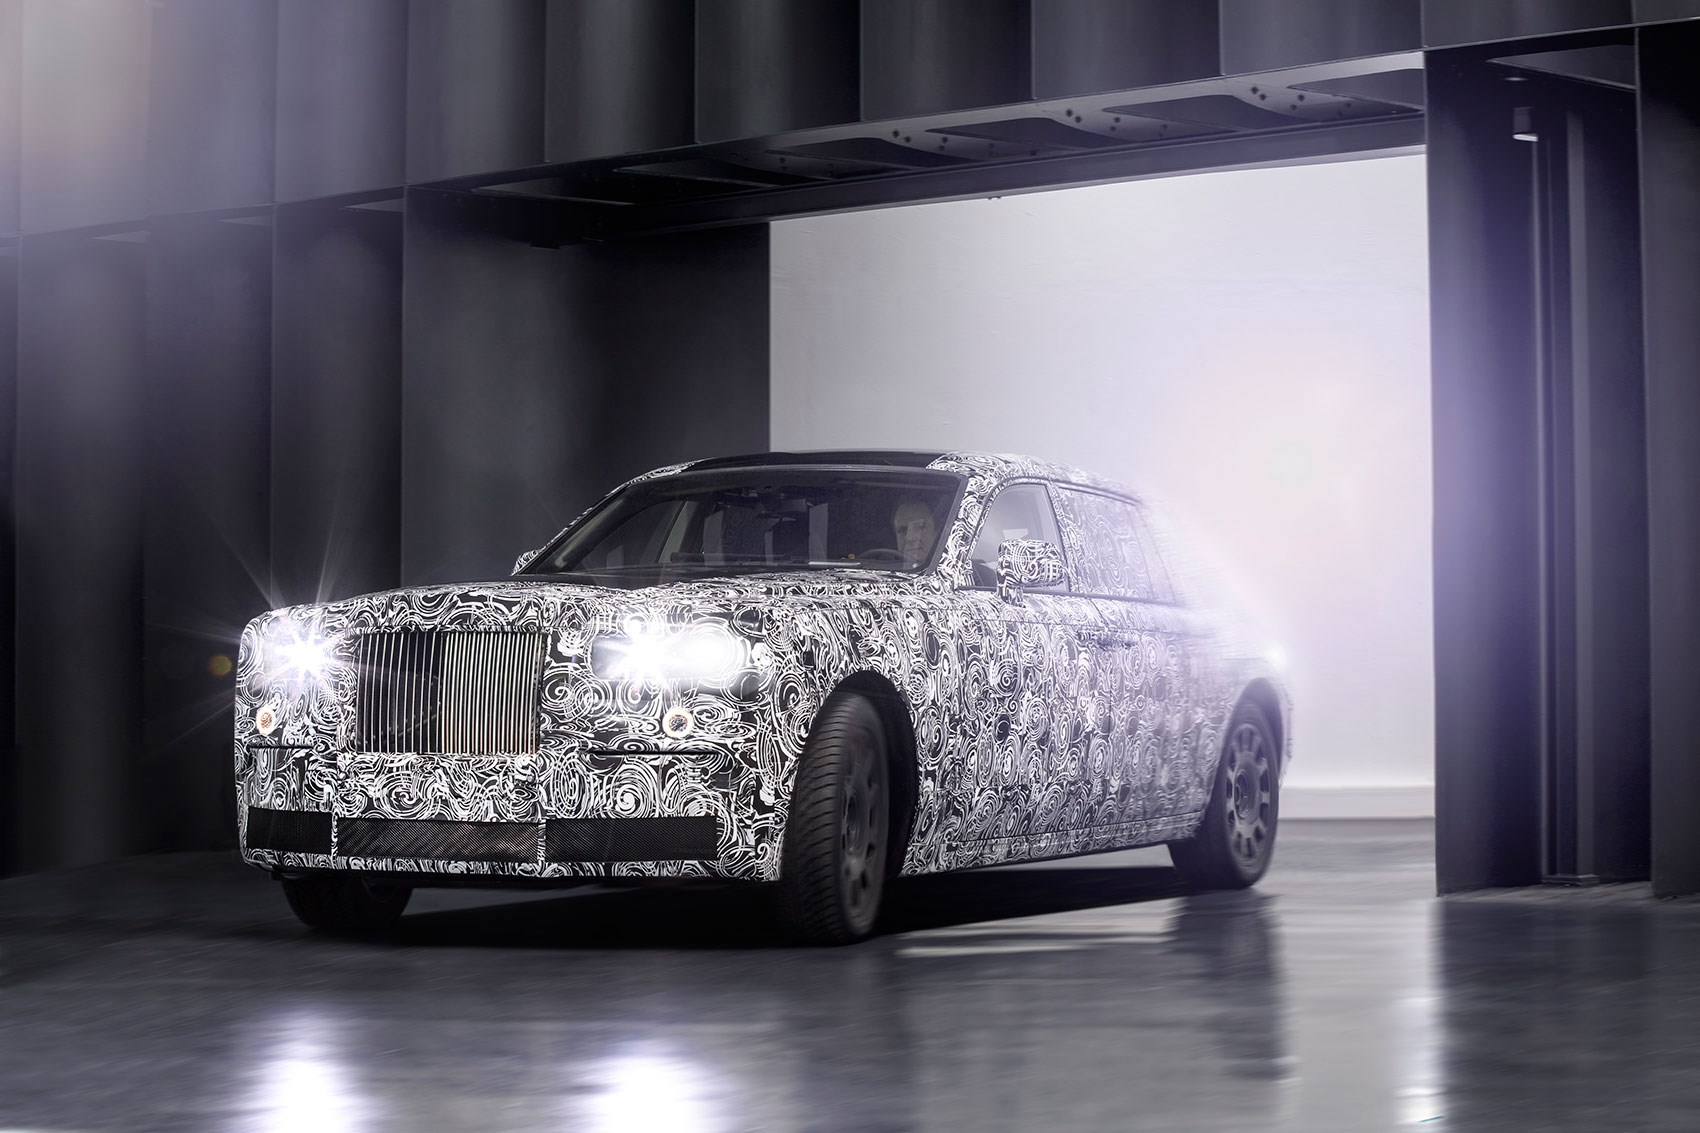 2018 Rolls Royce Phantom official spy shot